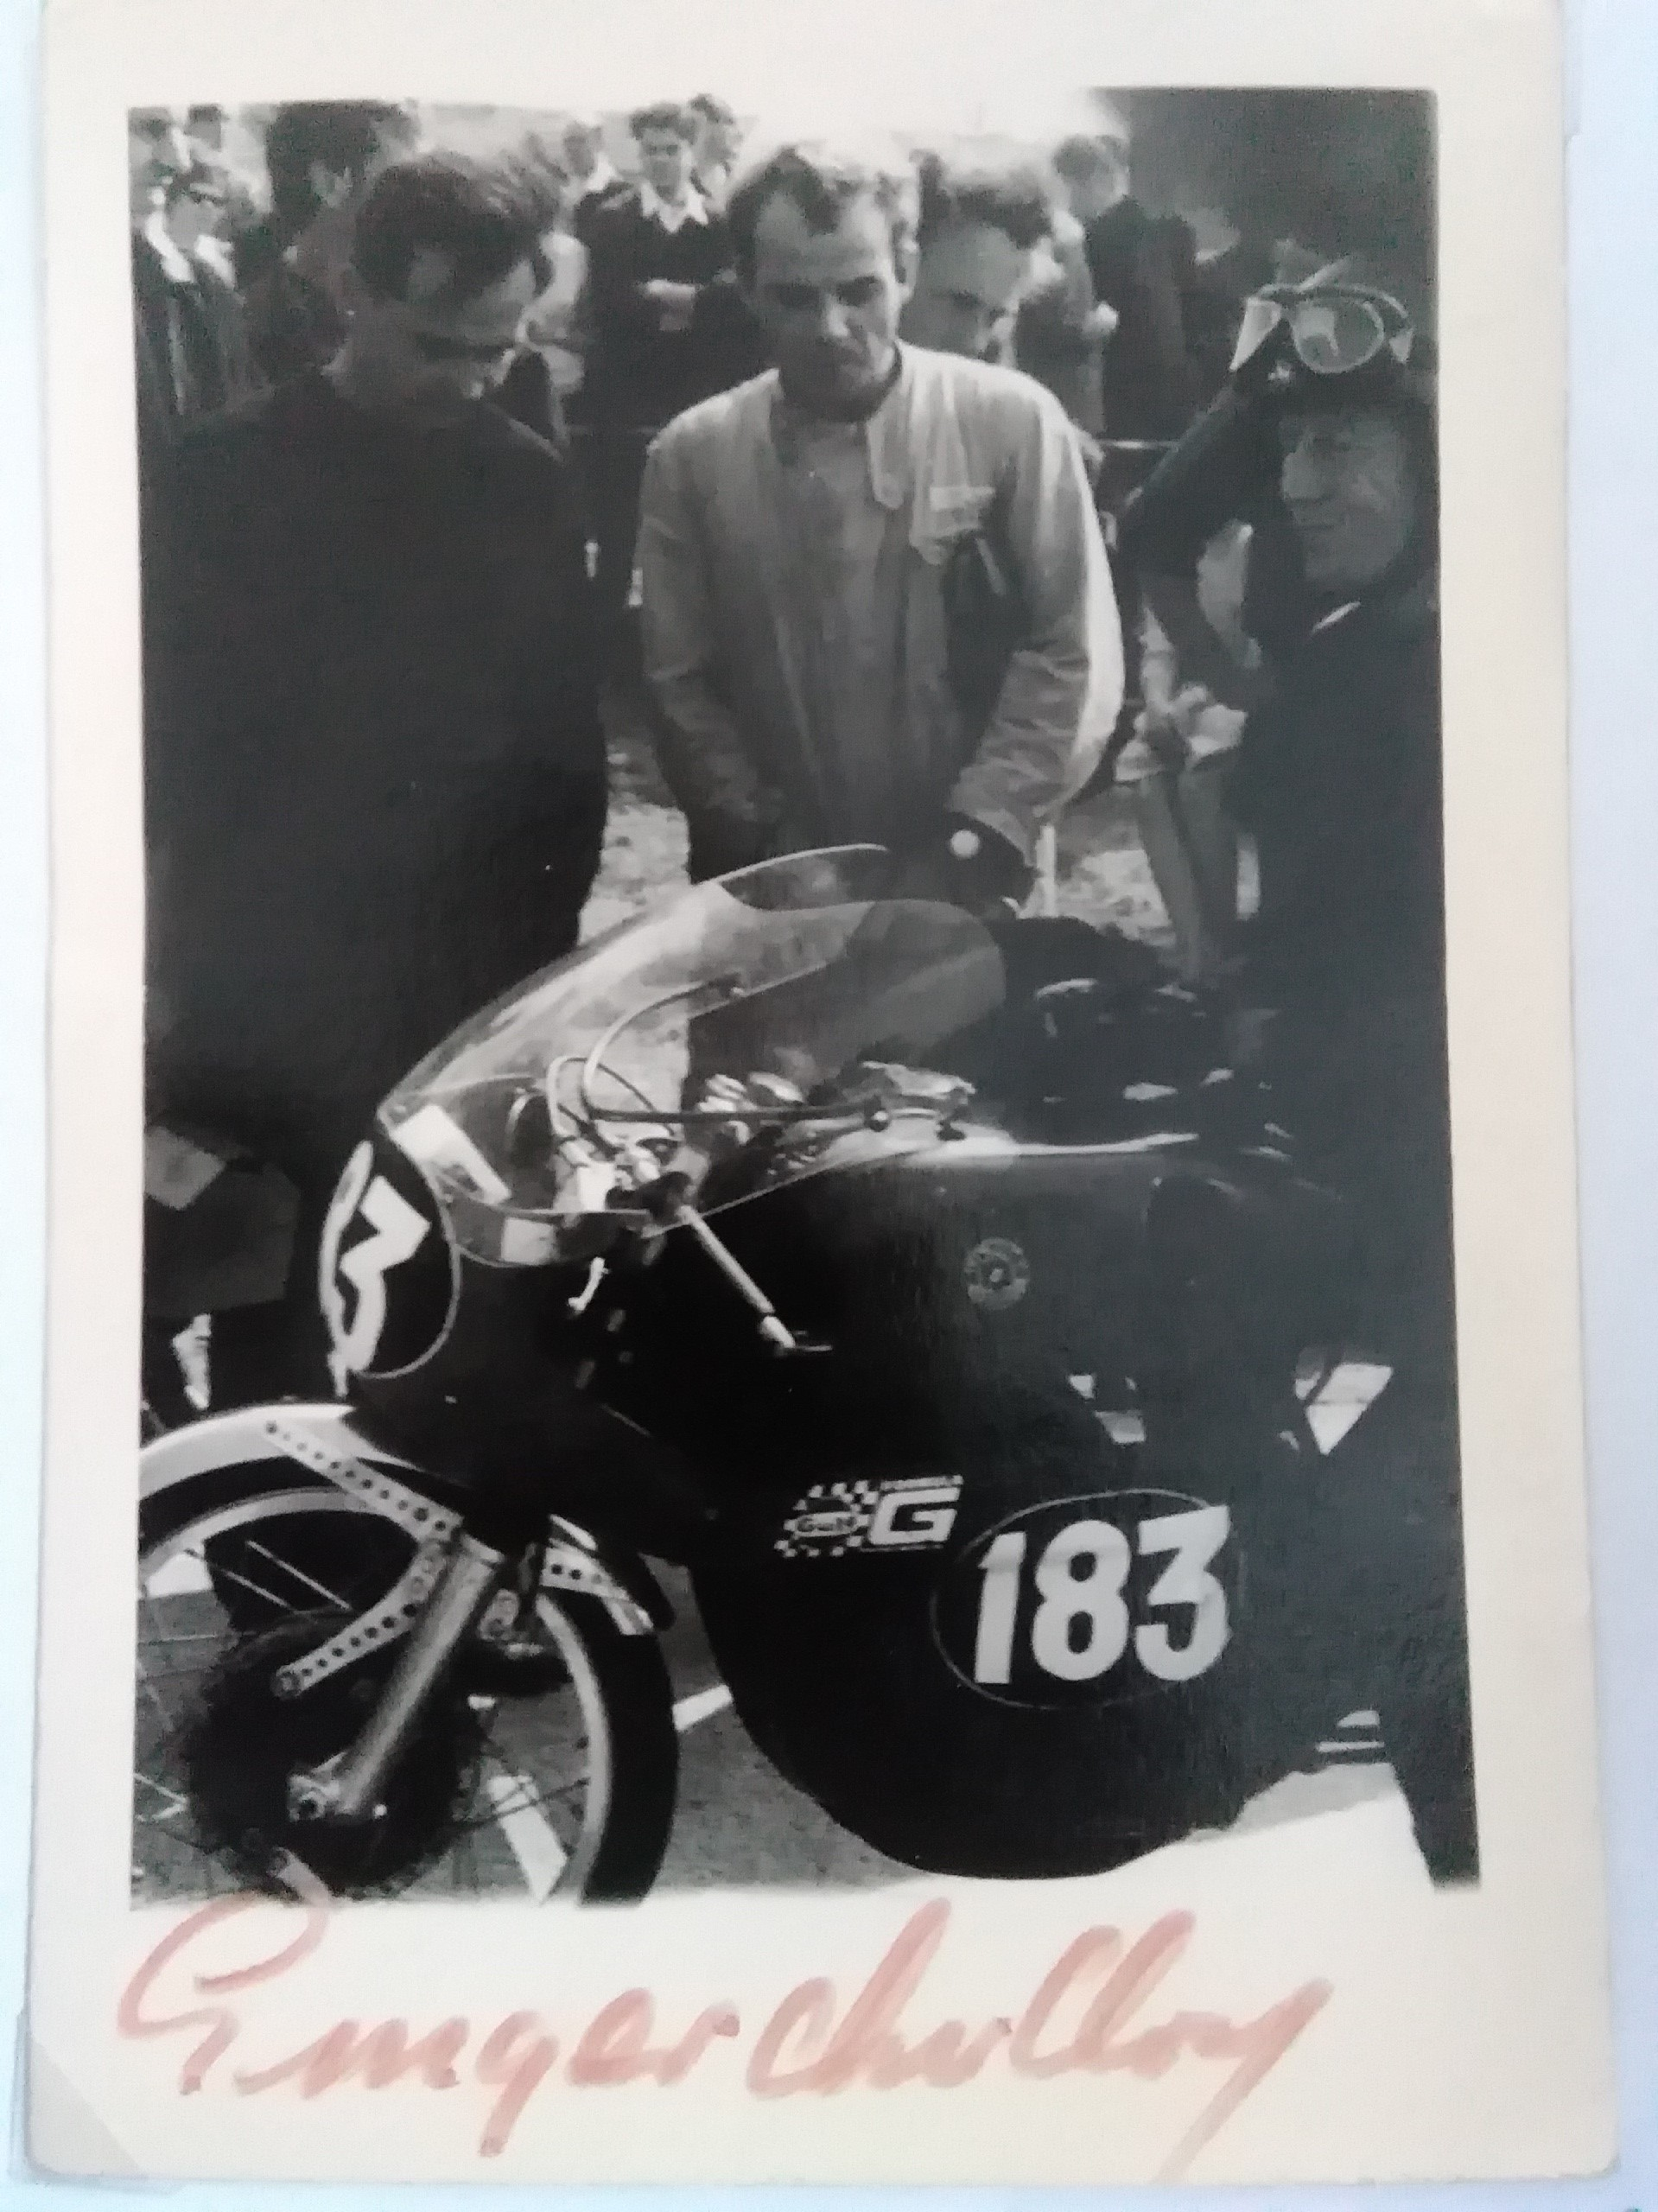 Ginger Molloy-Bultaco-Signed